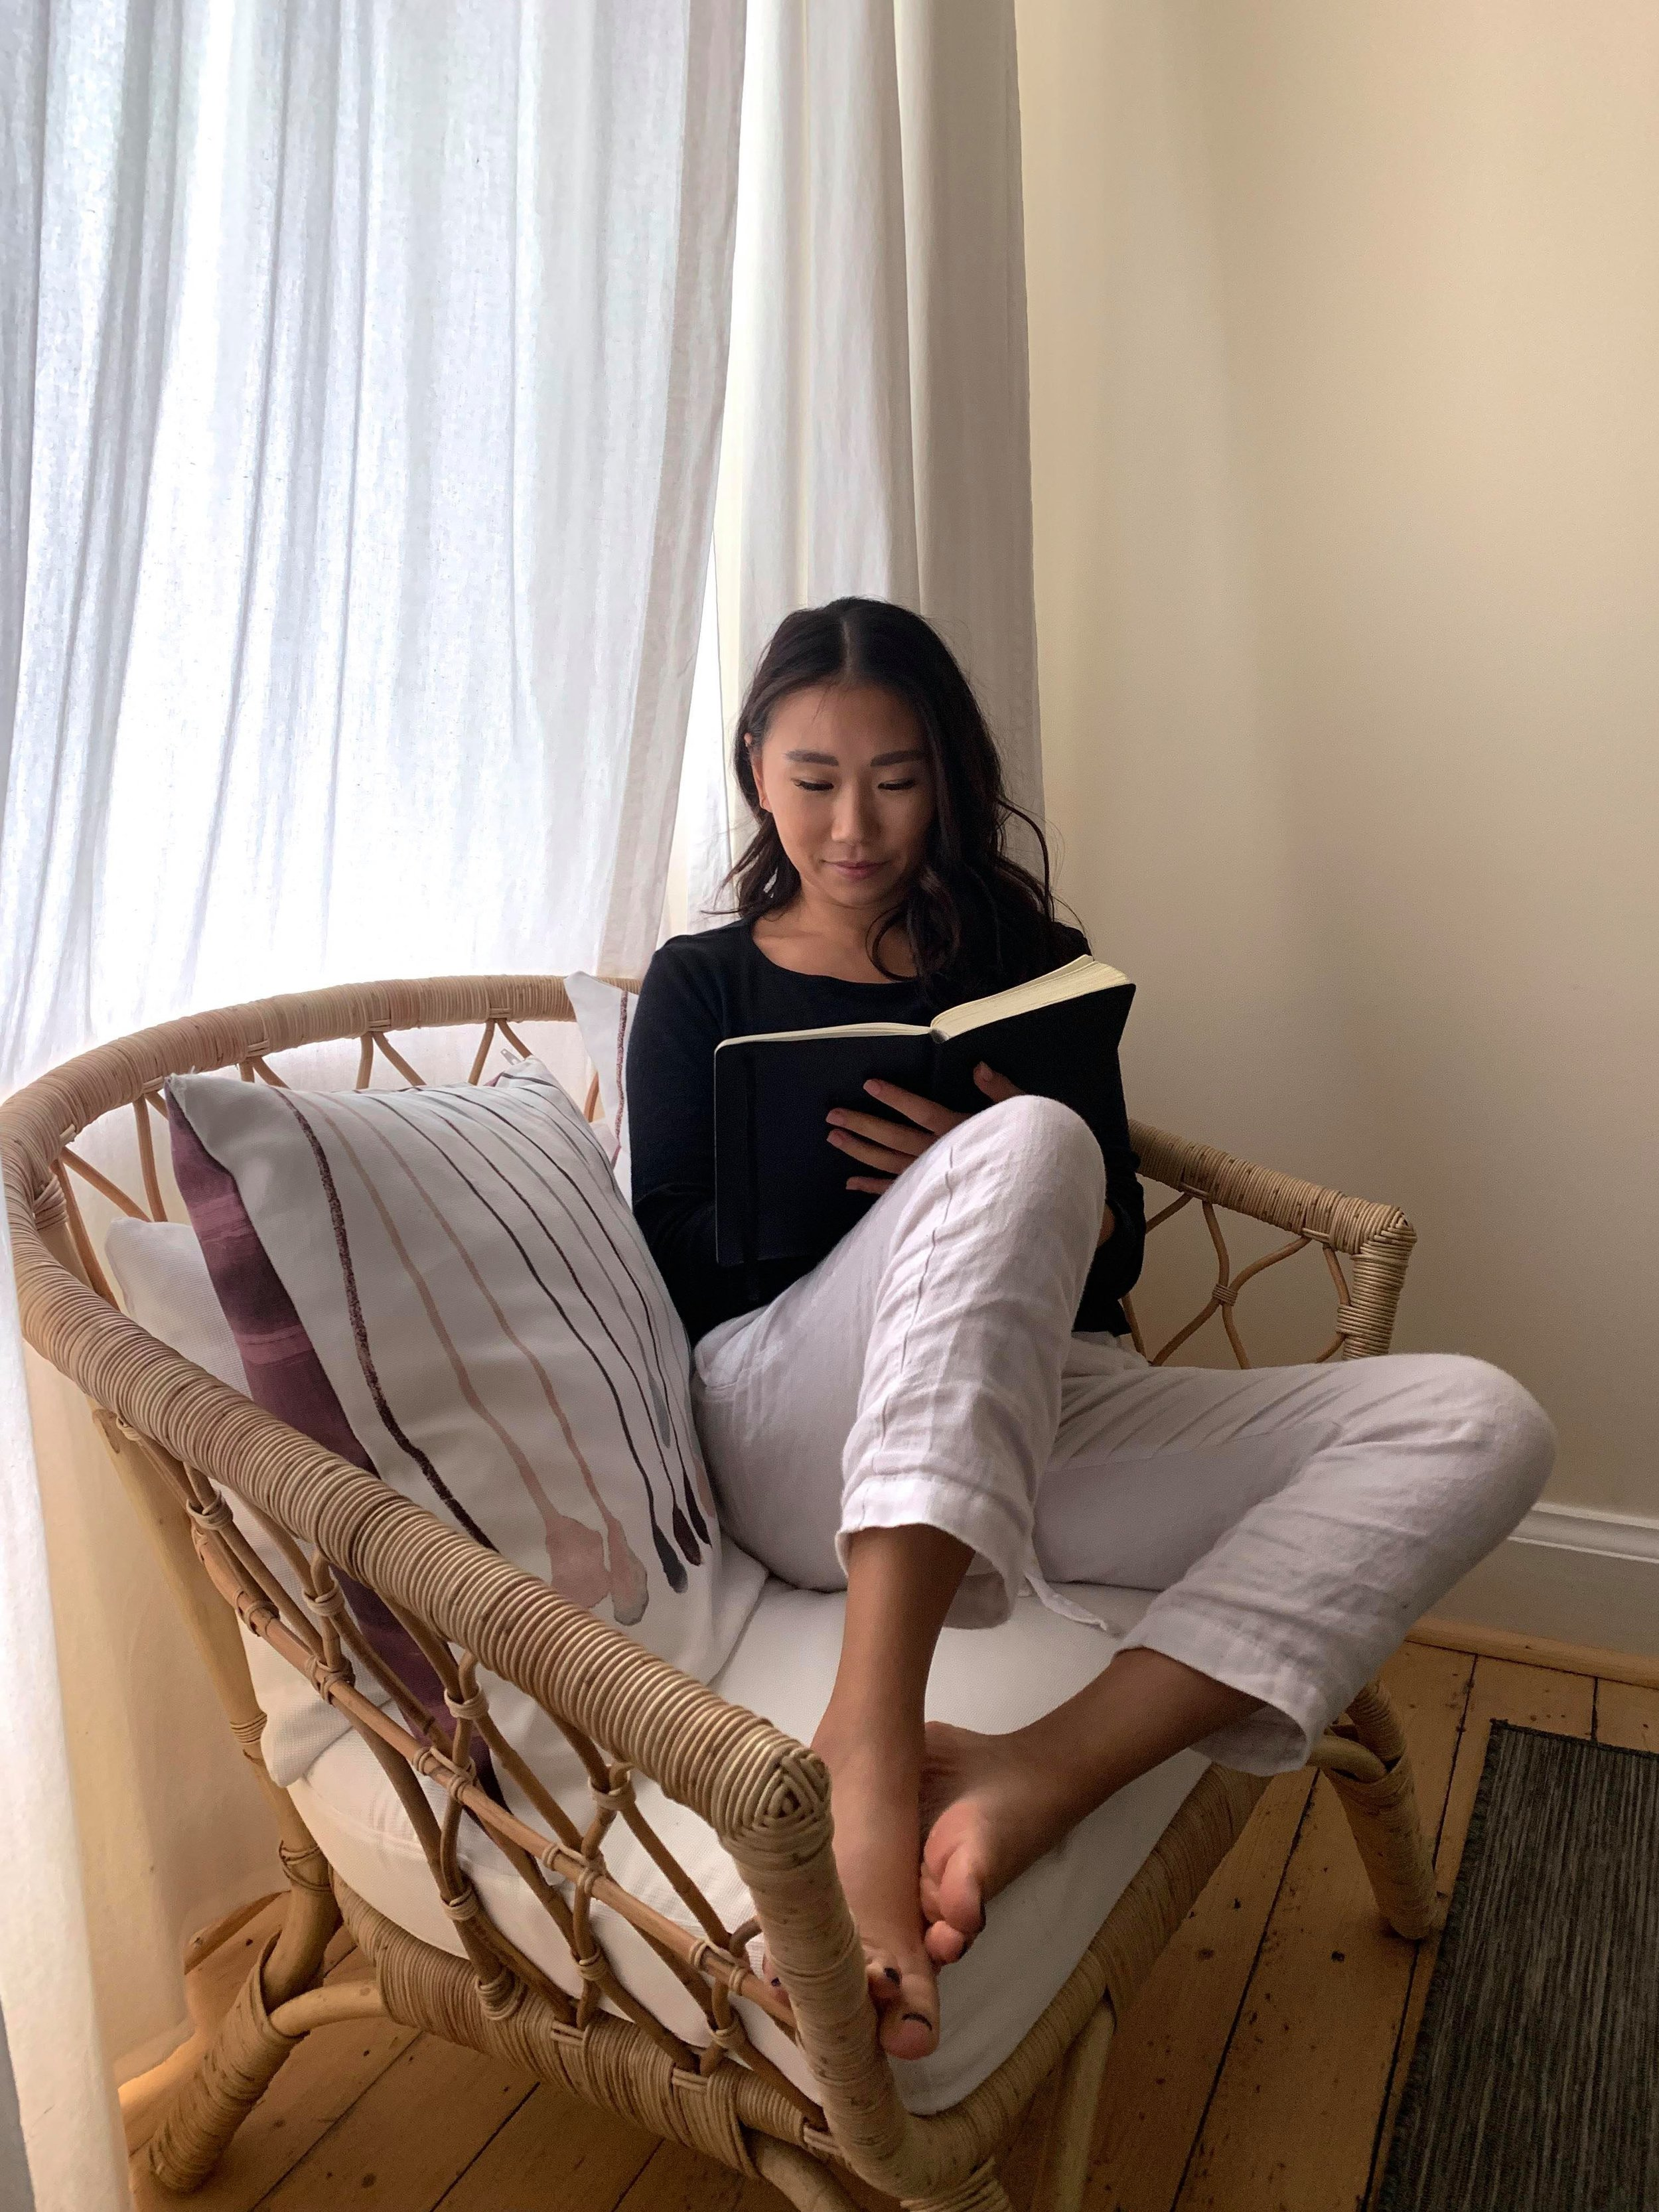 just a girl doing her thing, earning abundantly from a wicker chair. -